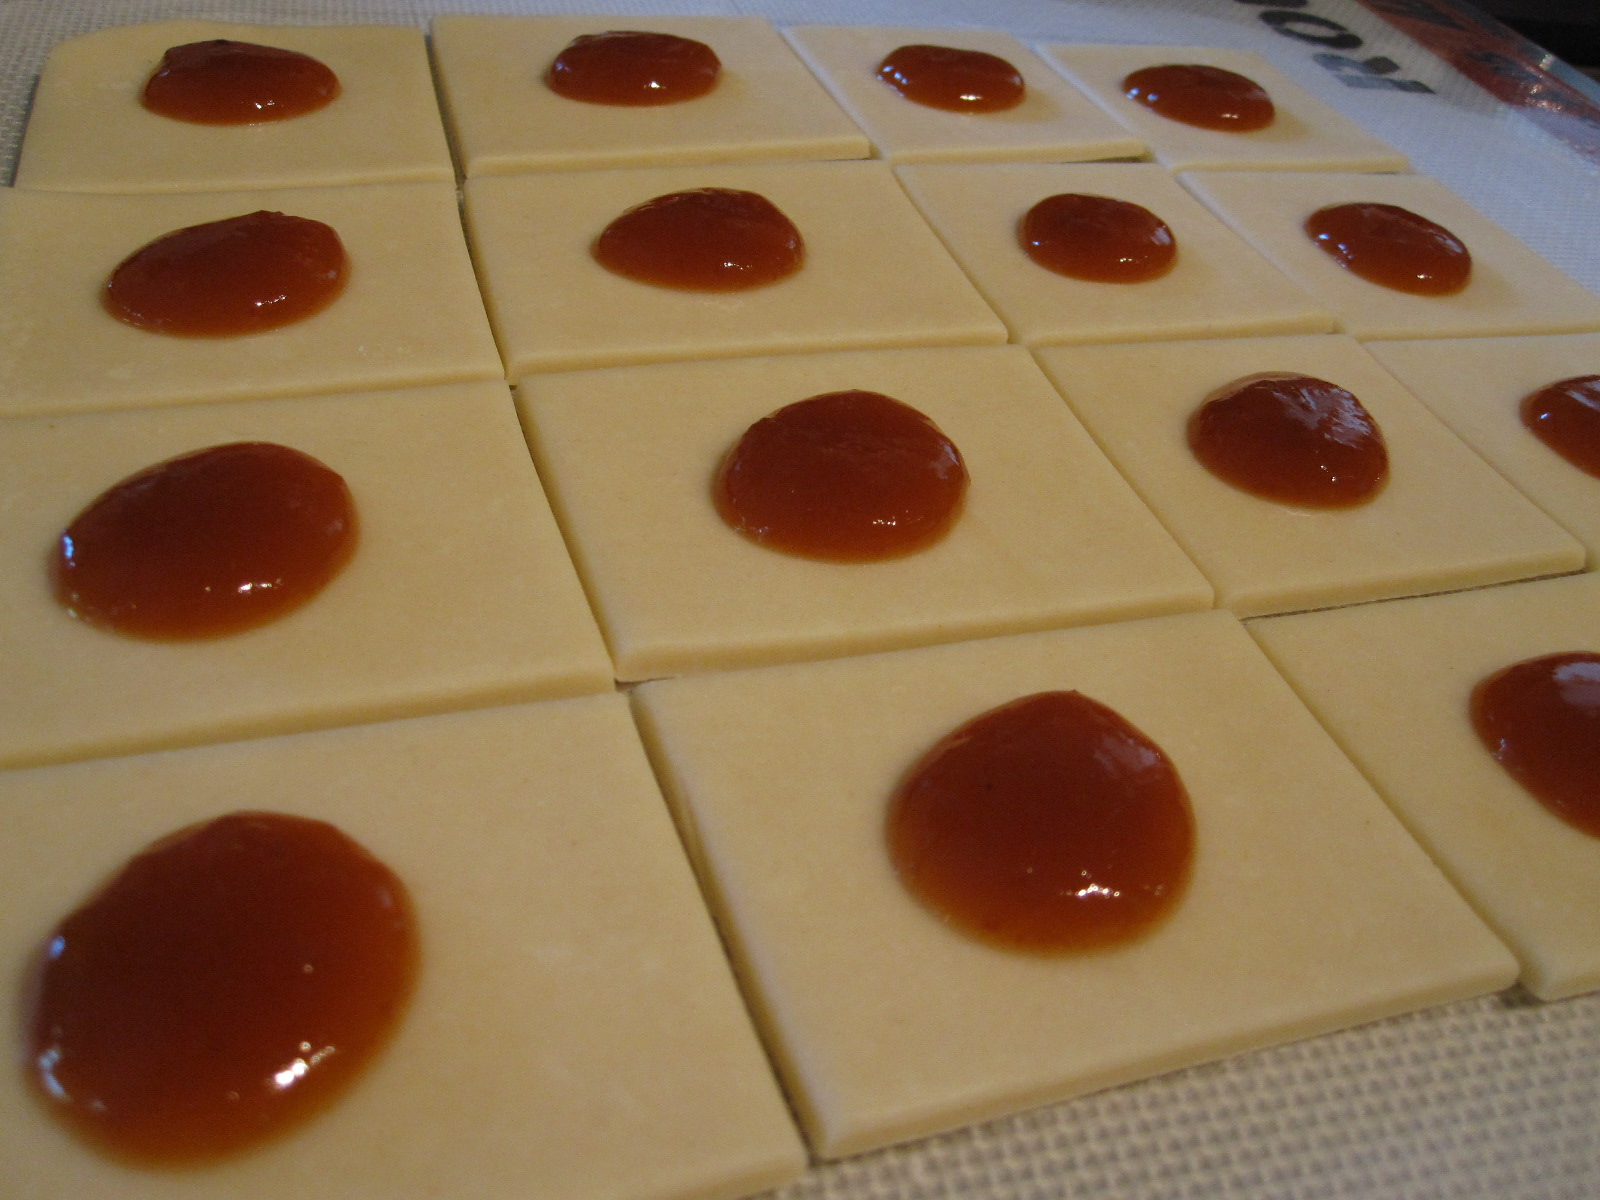 ... with apricot holiday favorite bow tie cookies with apricot preserves